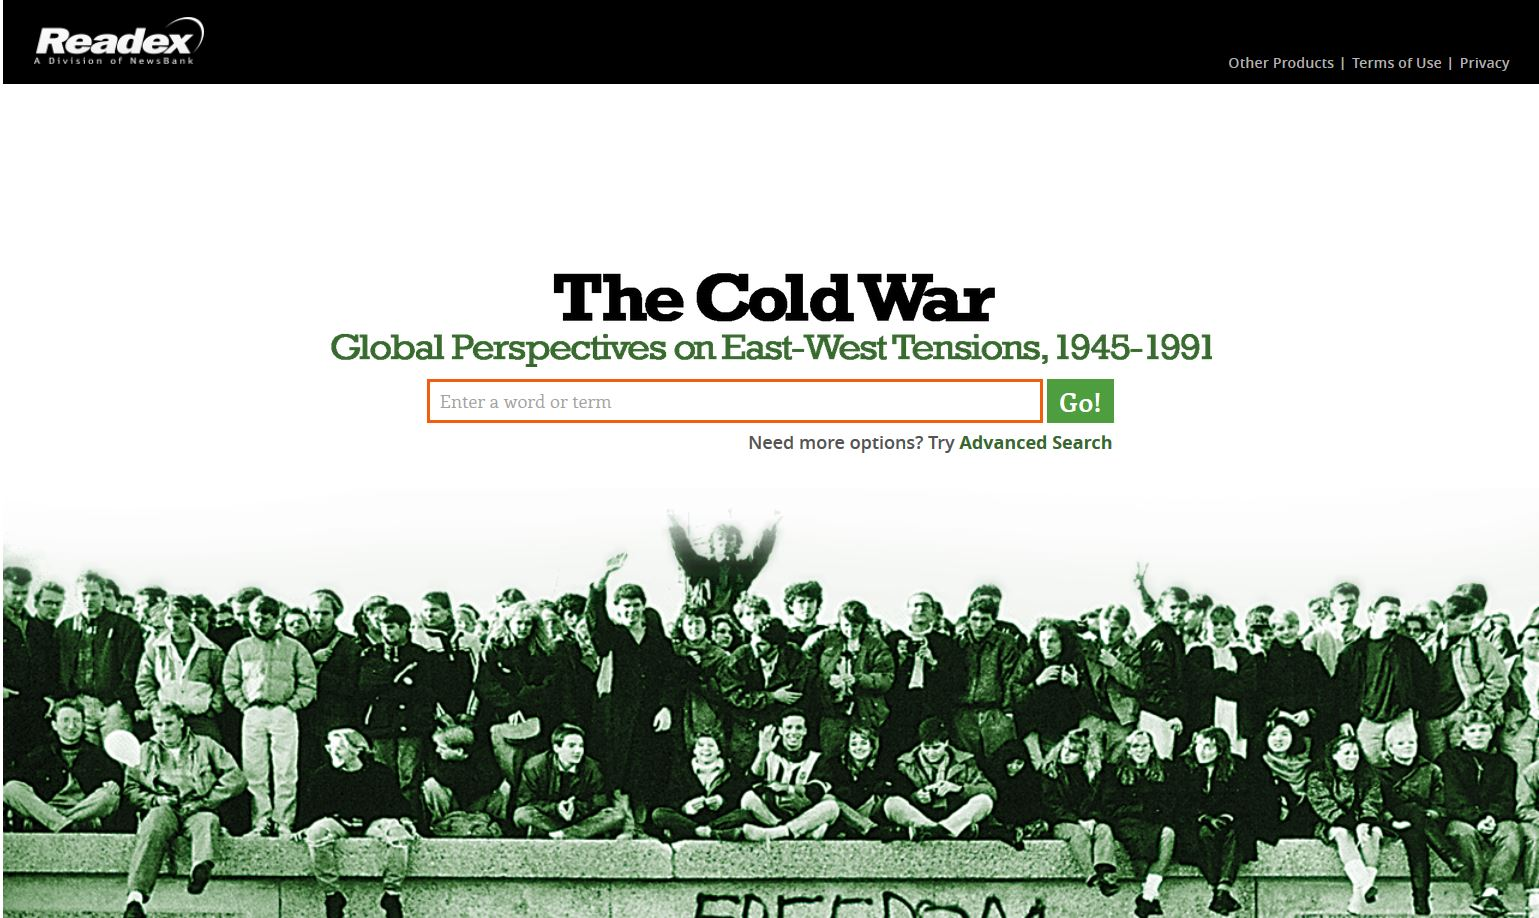 Cold War - Readex - frontpage